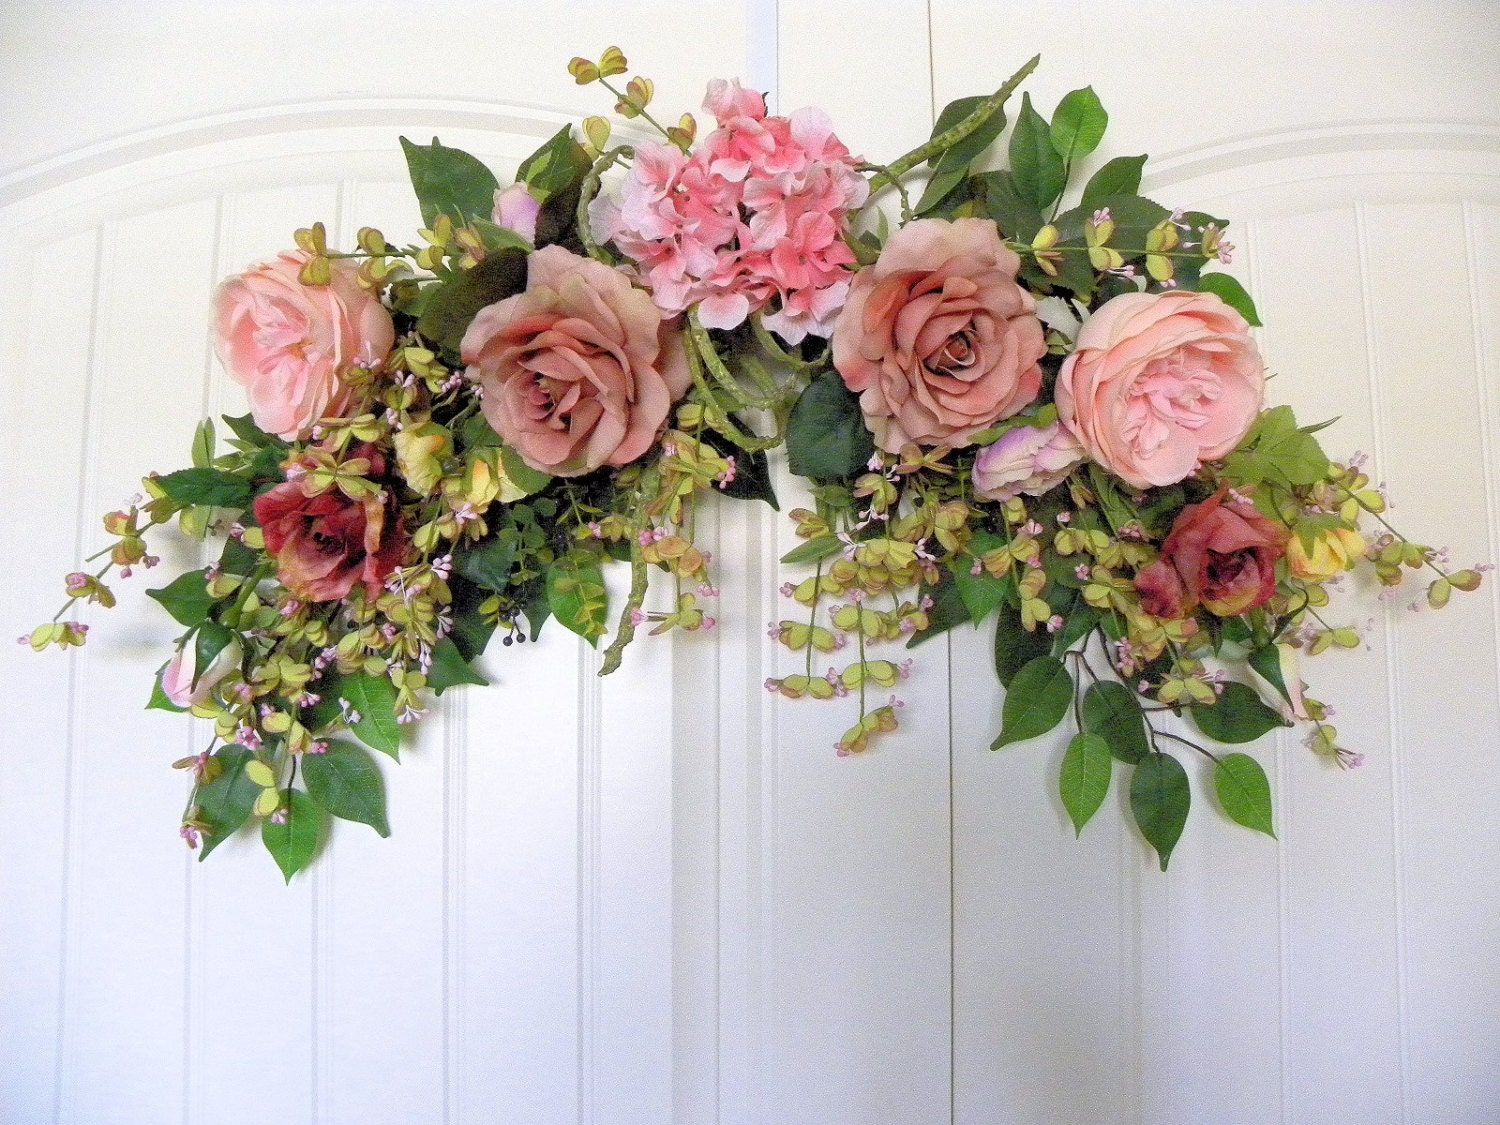 Antique Pink Rose Arch Floral Design Swag